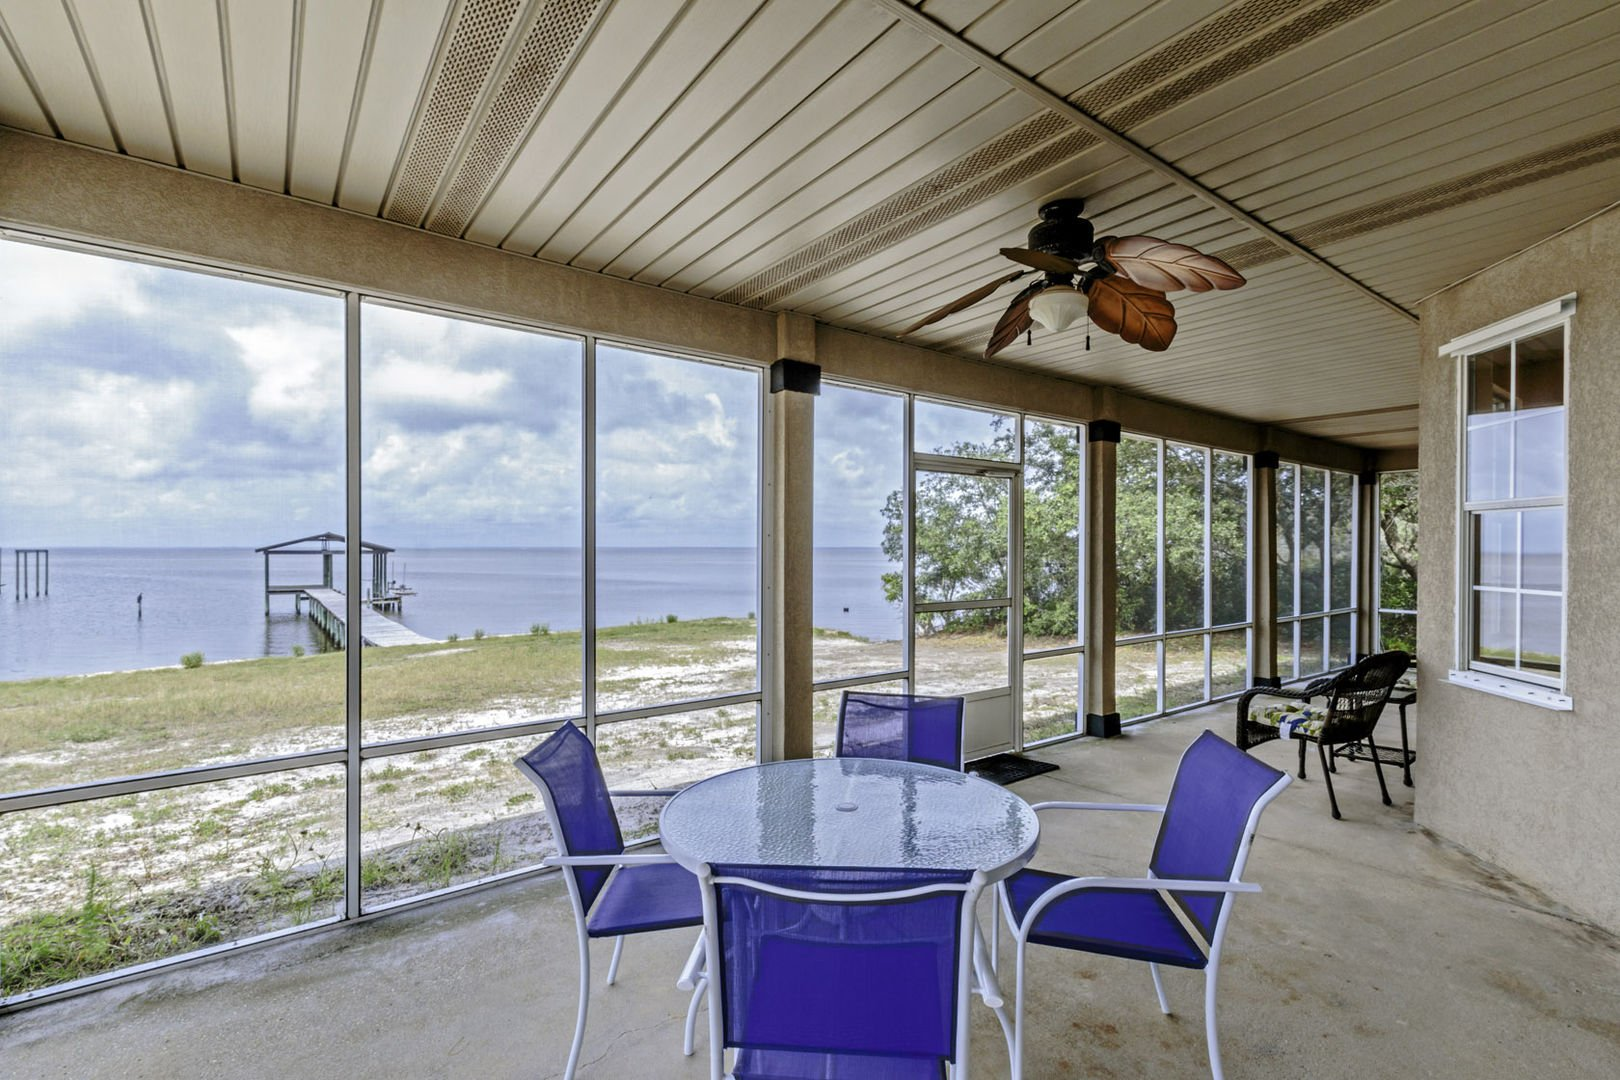 Gorgeous Bayfront Views From The Screened Porch of this Vacation Home in Fort Morgan AL.